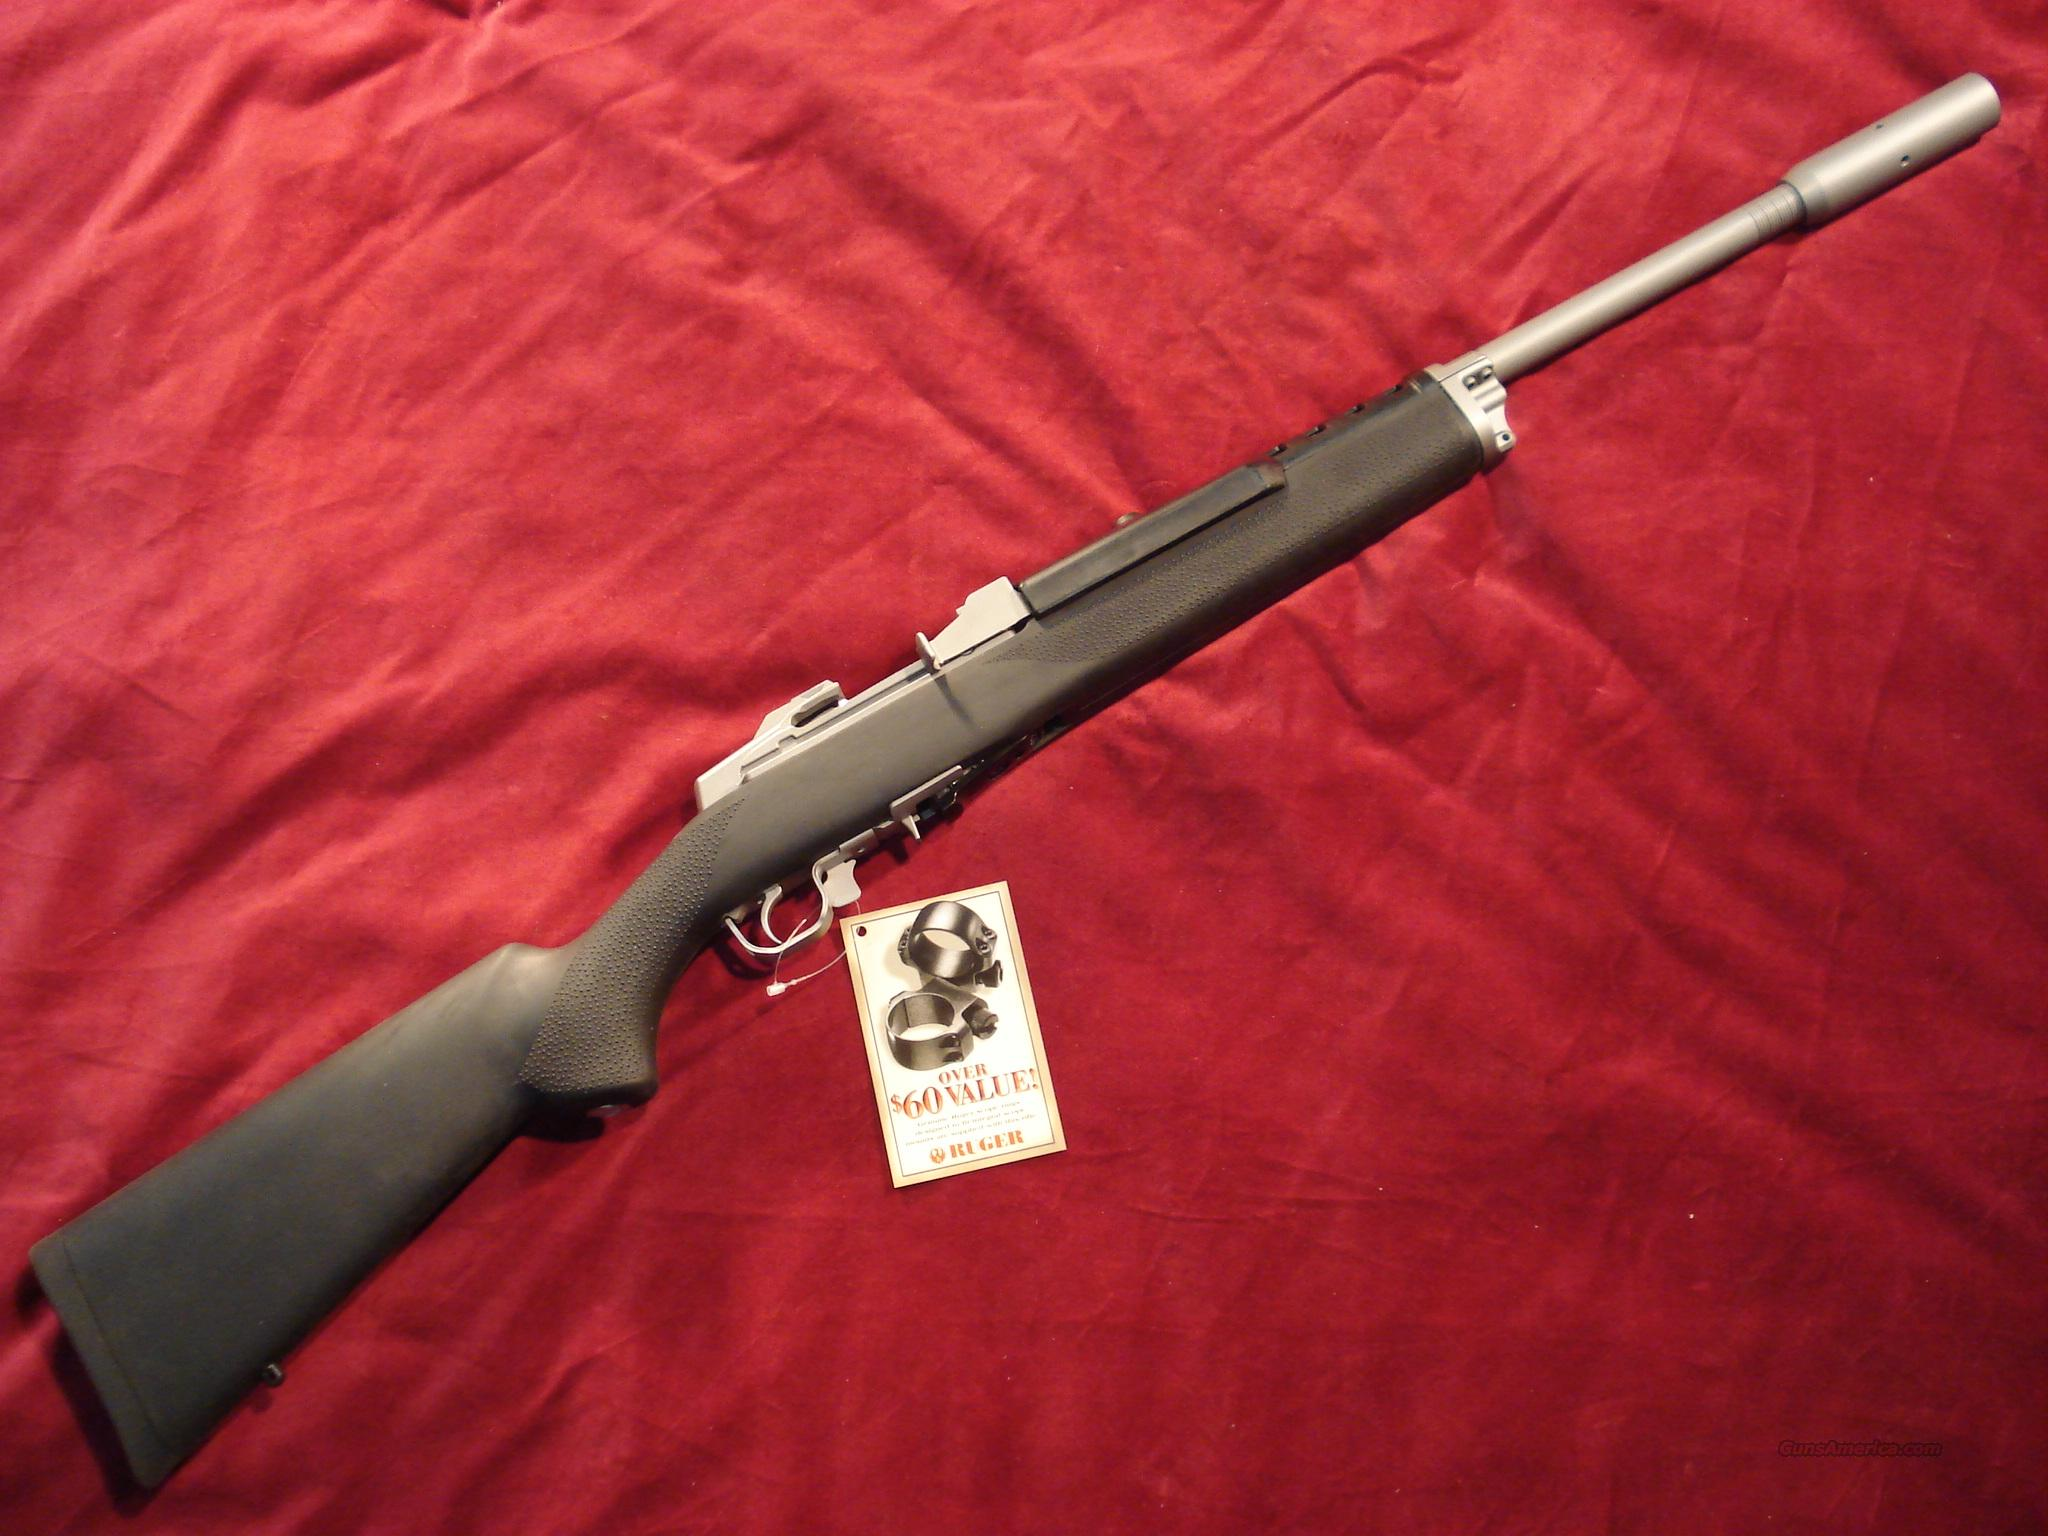 RUGER MINI 14 TARGET RIFLE W/HOGUE STOCK  Guns > Rifles > Ruger Rifles > Mini-14 Type